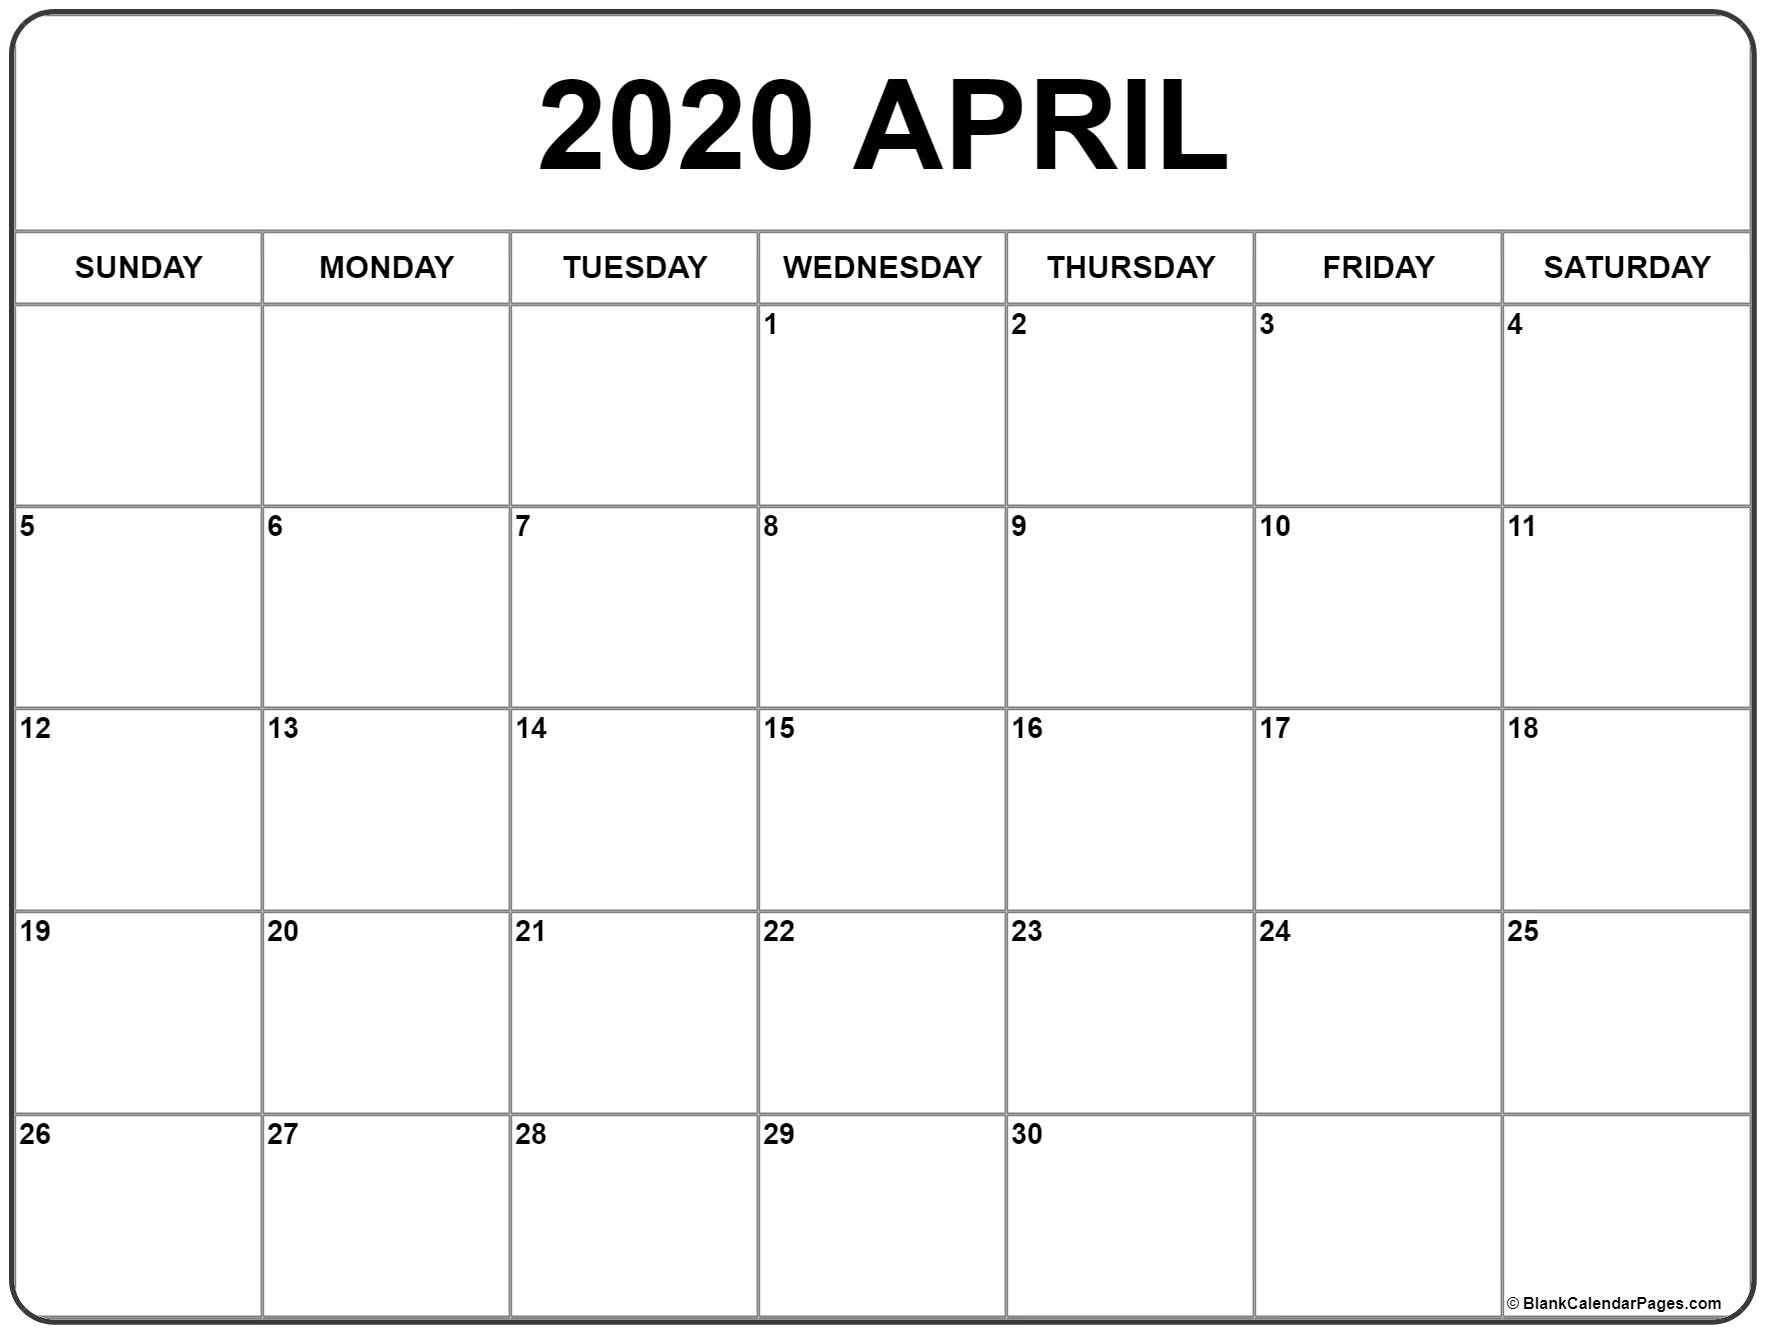 April 2020 Calendar | Free Printable Monthly Calendars  Free Printable Monthly Calendar March 2020